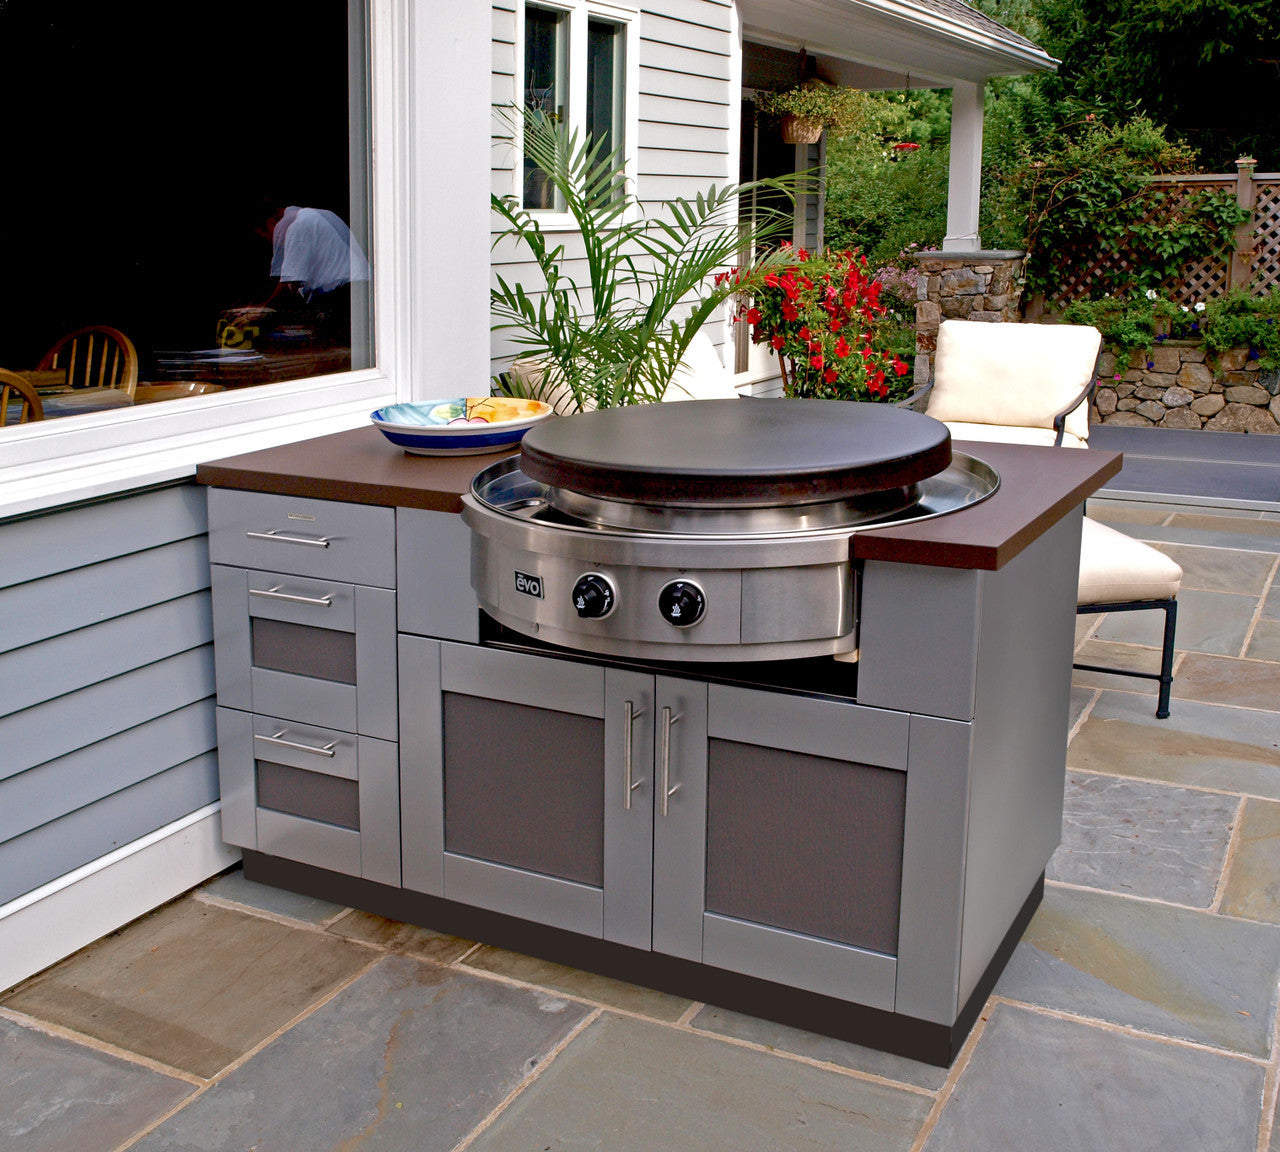 ... Danver/Brown Jordan Outdoor Kitchens   BBQing.com   3 ...